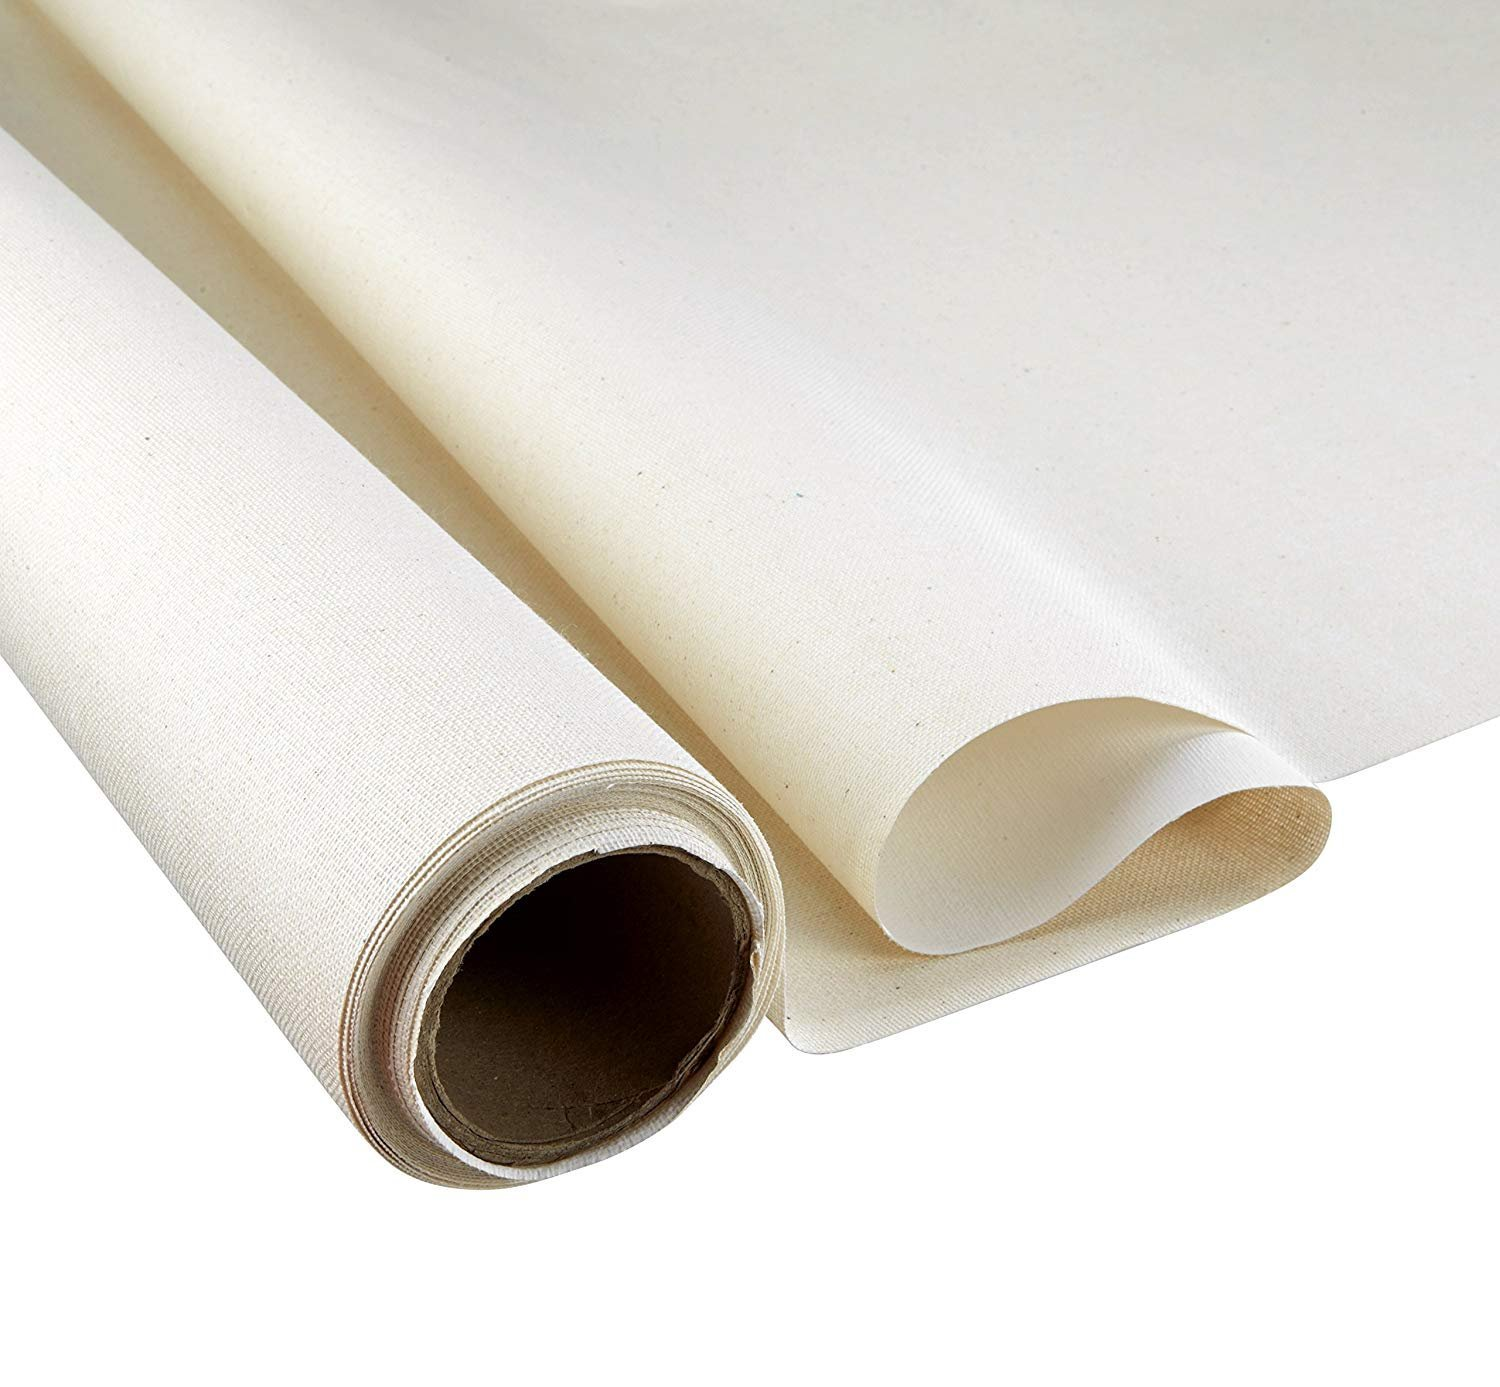 Artlicious Premium Heavy Weight Cotton Duck Canvas Roll 36-inch by 6-Yards - 15 oz Primed Weight by Sorillo Brands